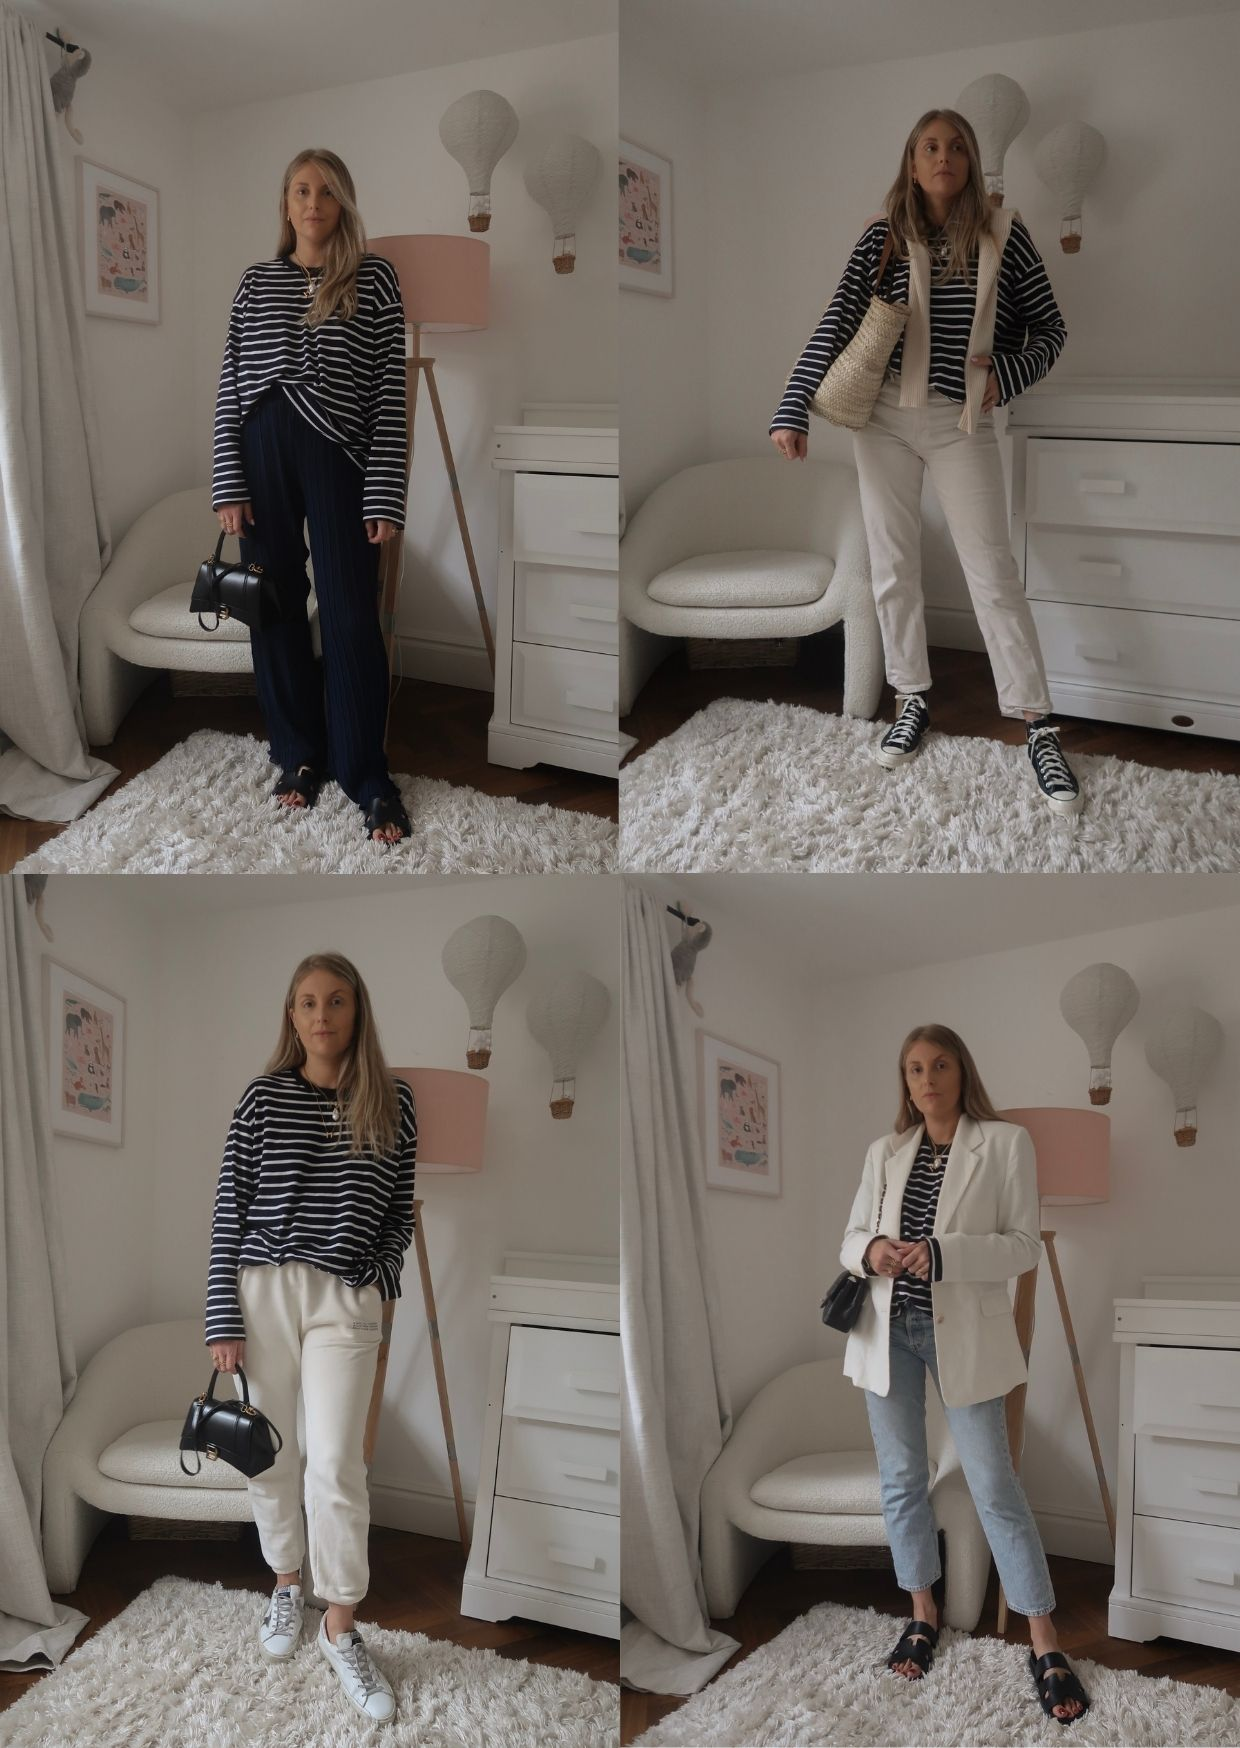 HOW TO STYLE A STRIPED TOP - Arket Striped top in transitional outfit ideas